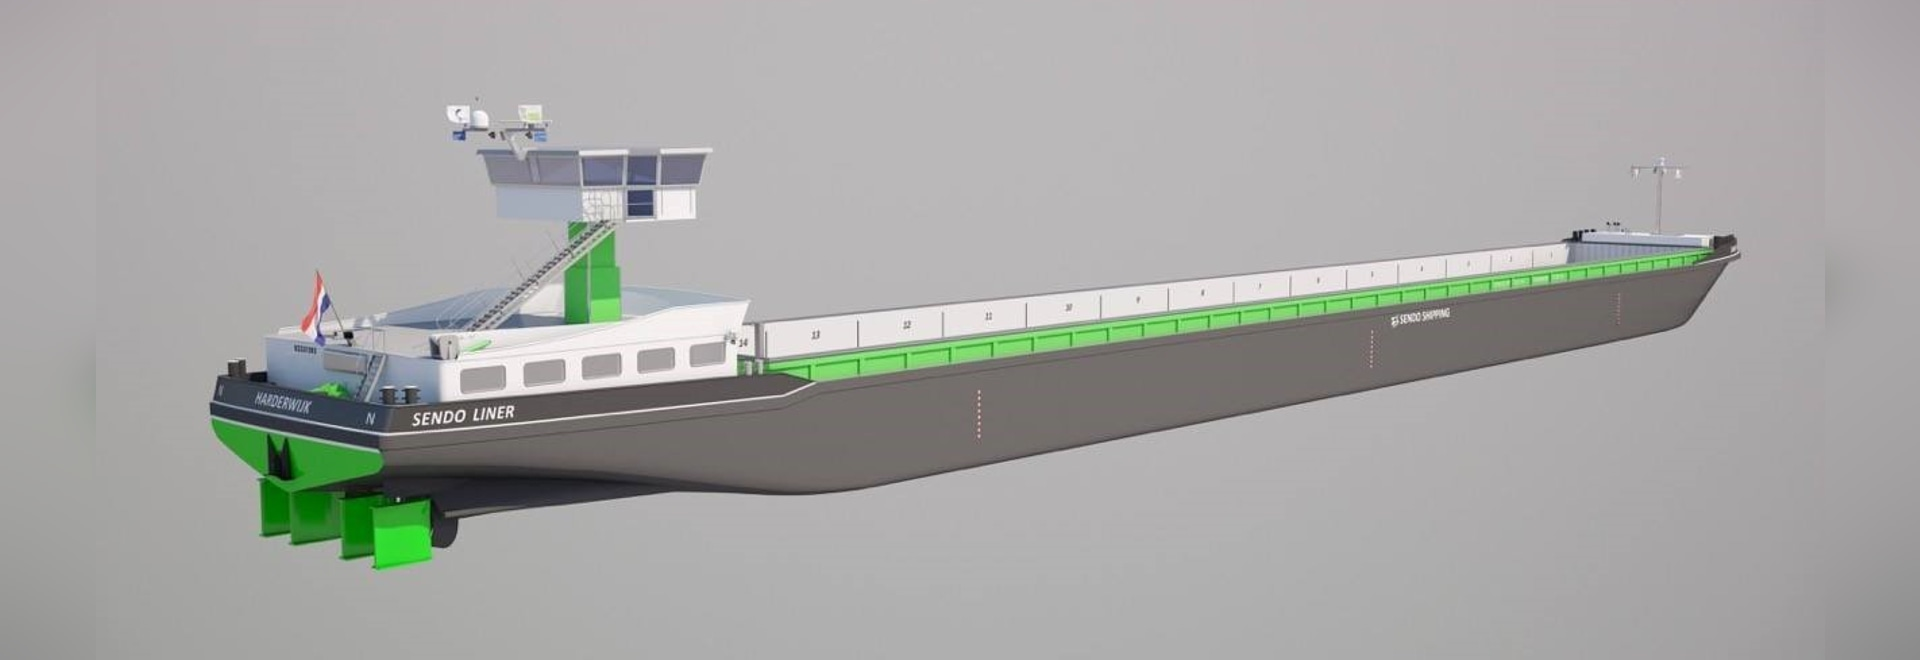 Damen completes first diesel-electric inland barge build for Sendo Shipping